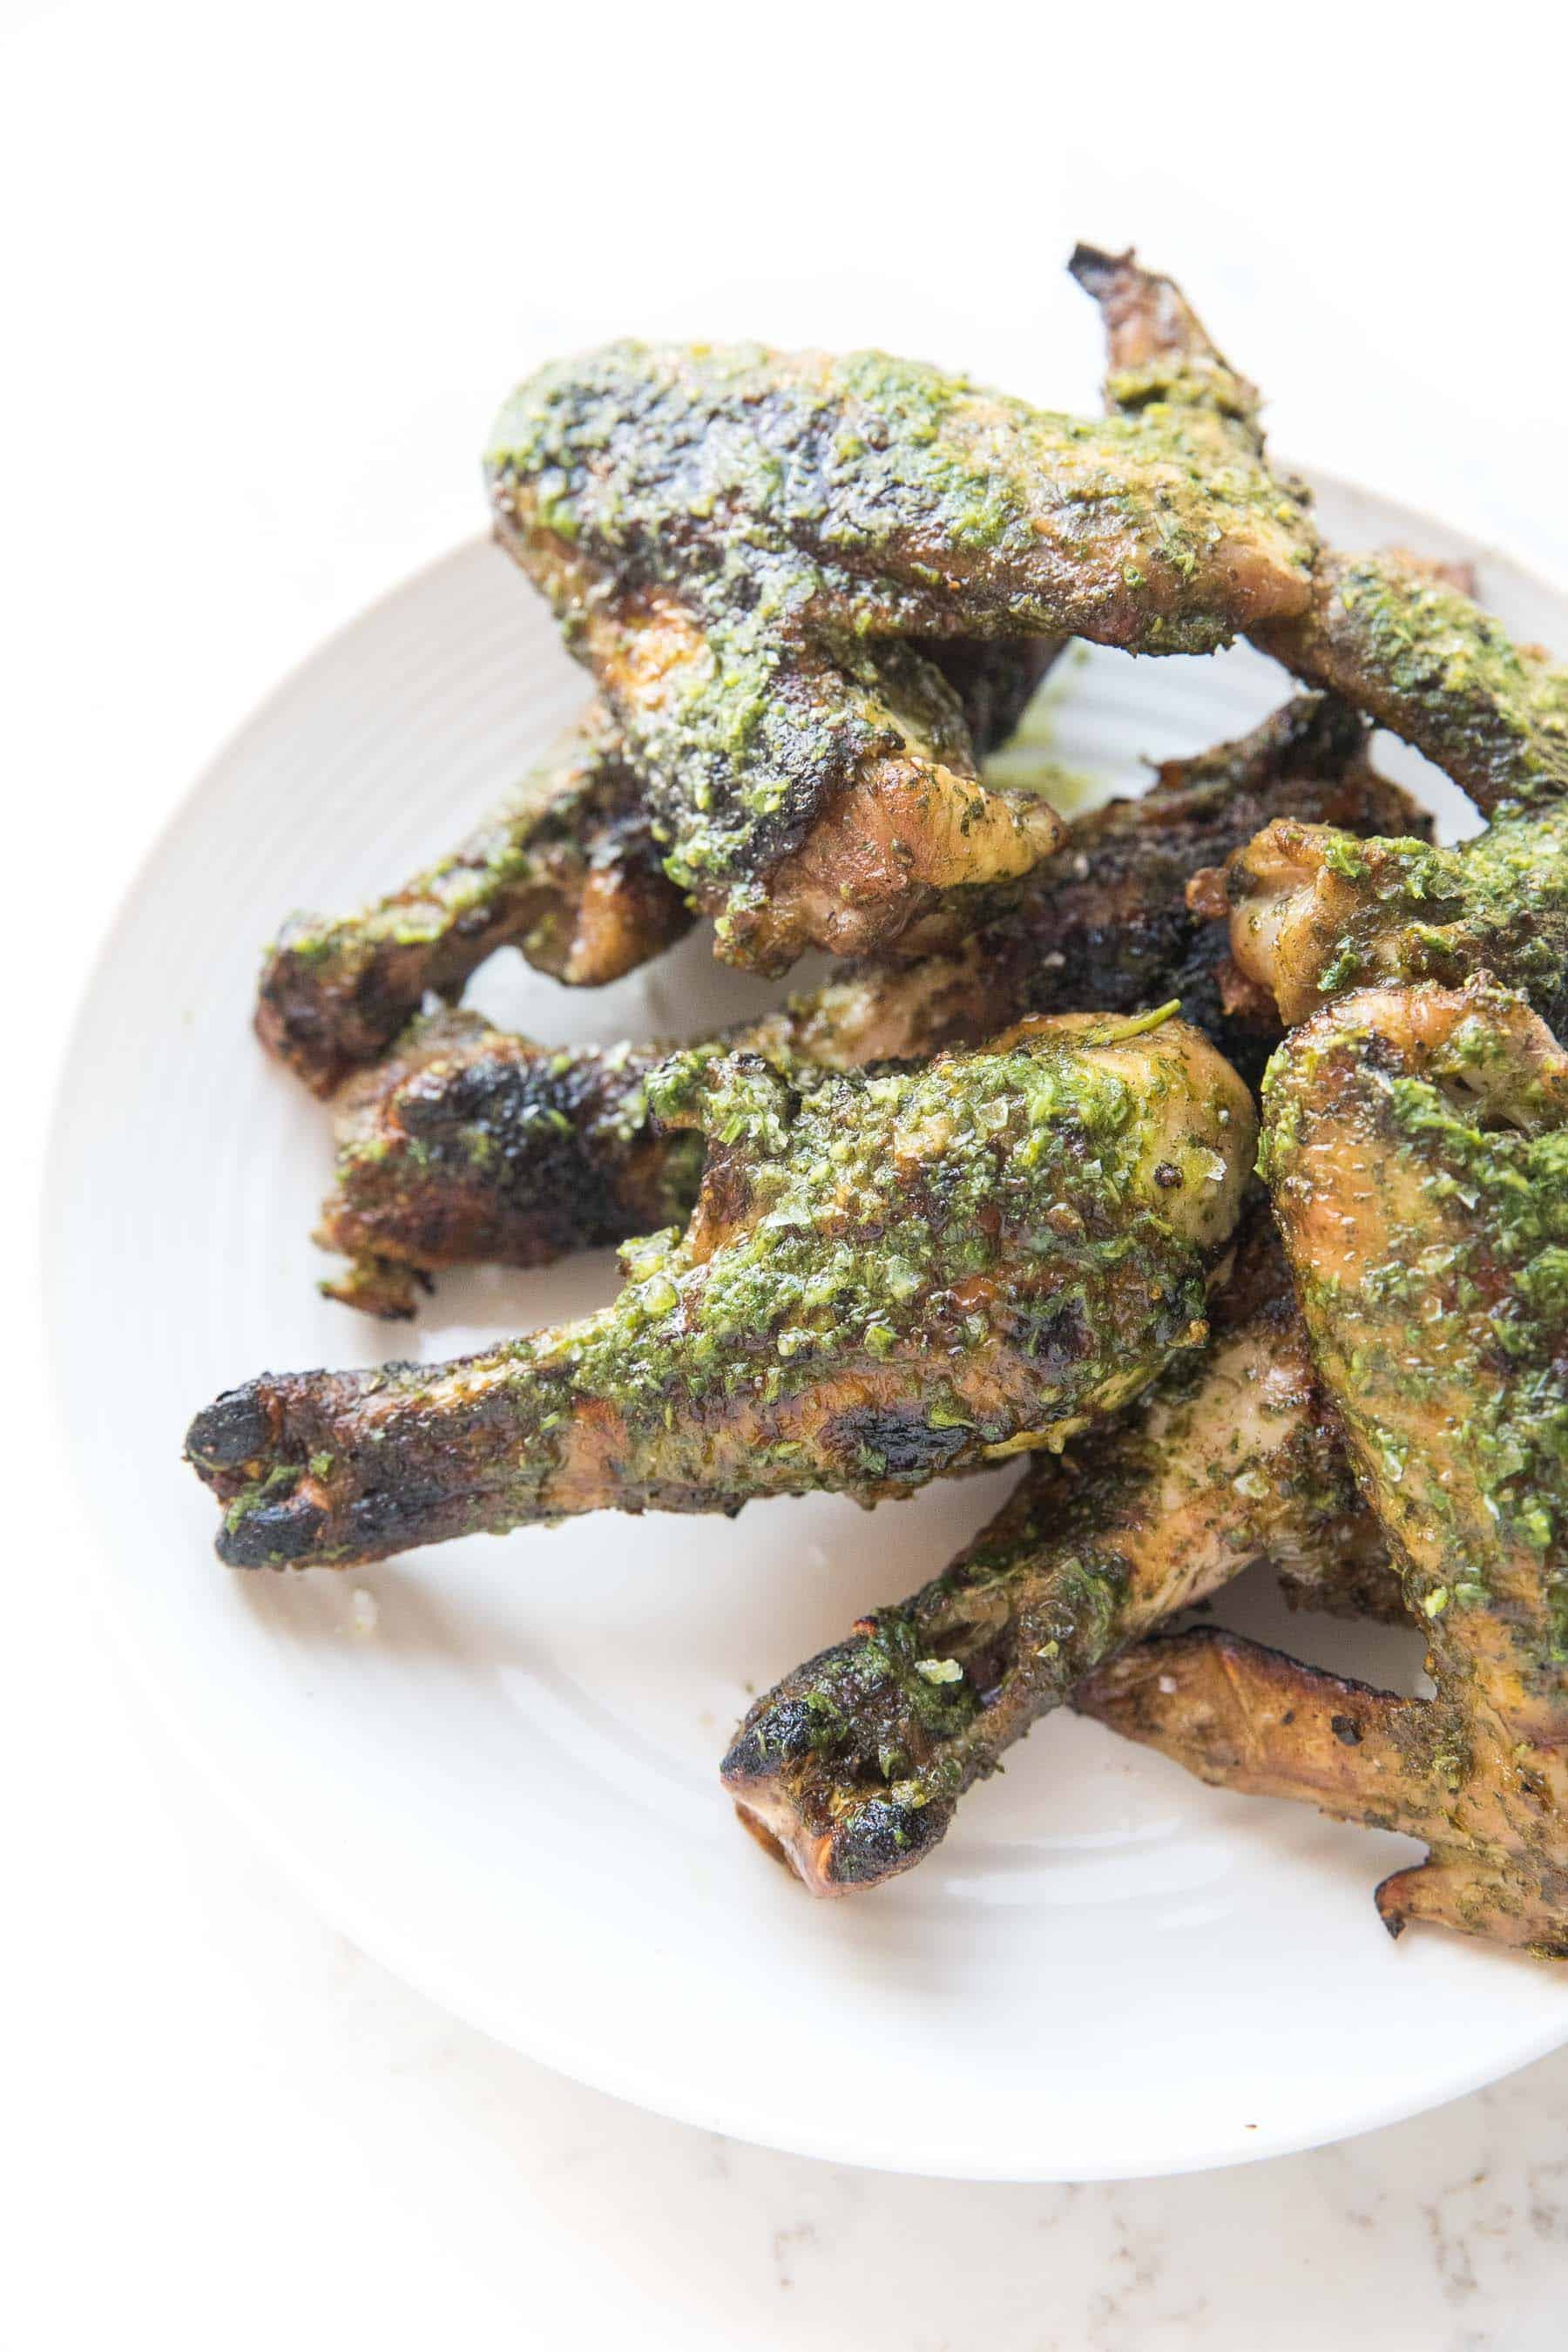 grilled chicken drumsticks and wings brushed with chimichurri sauce on a white background and white plate